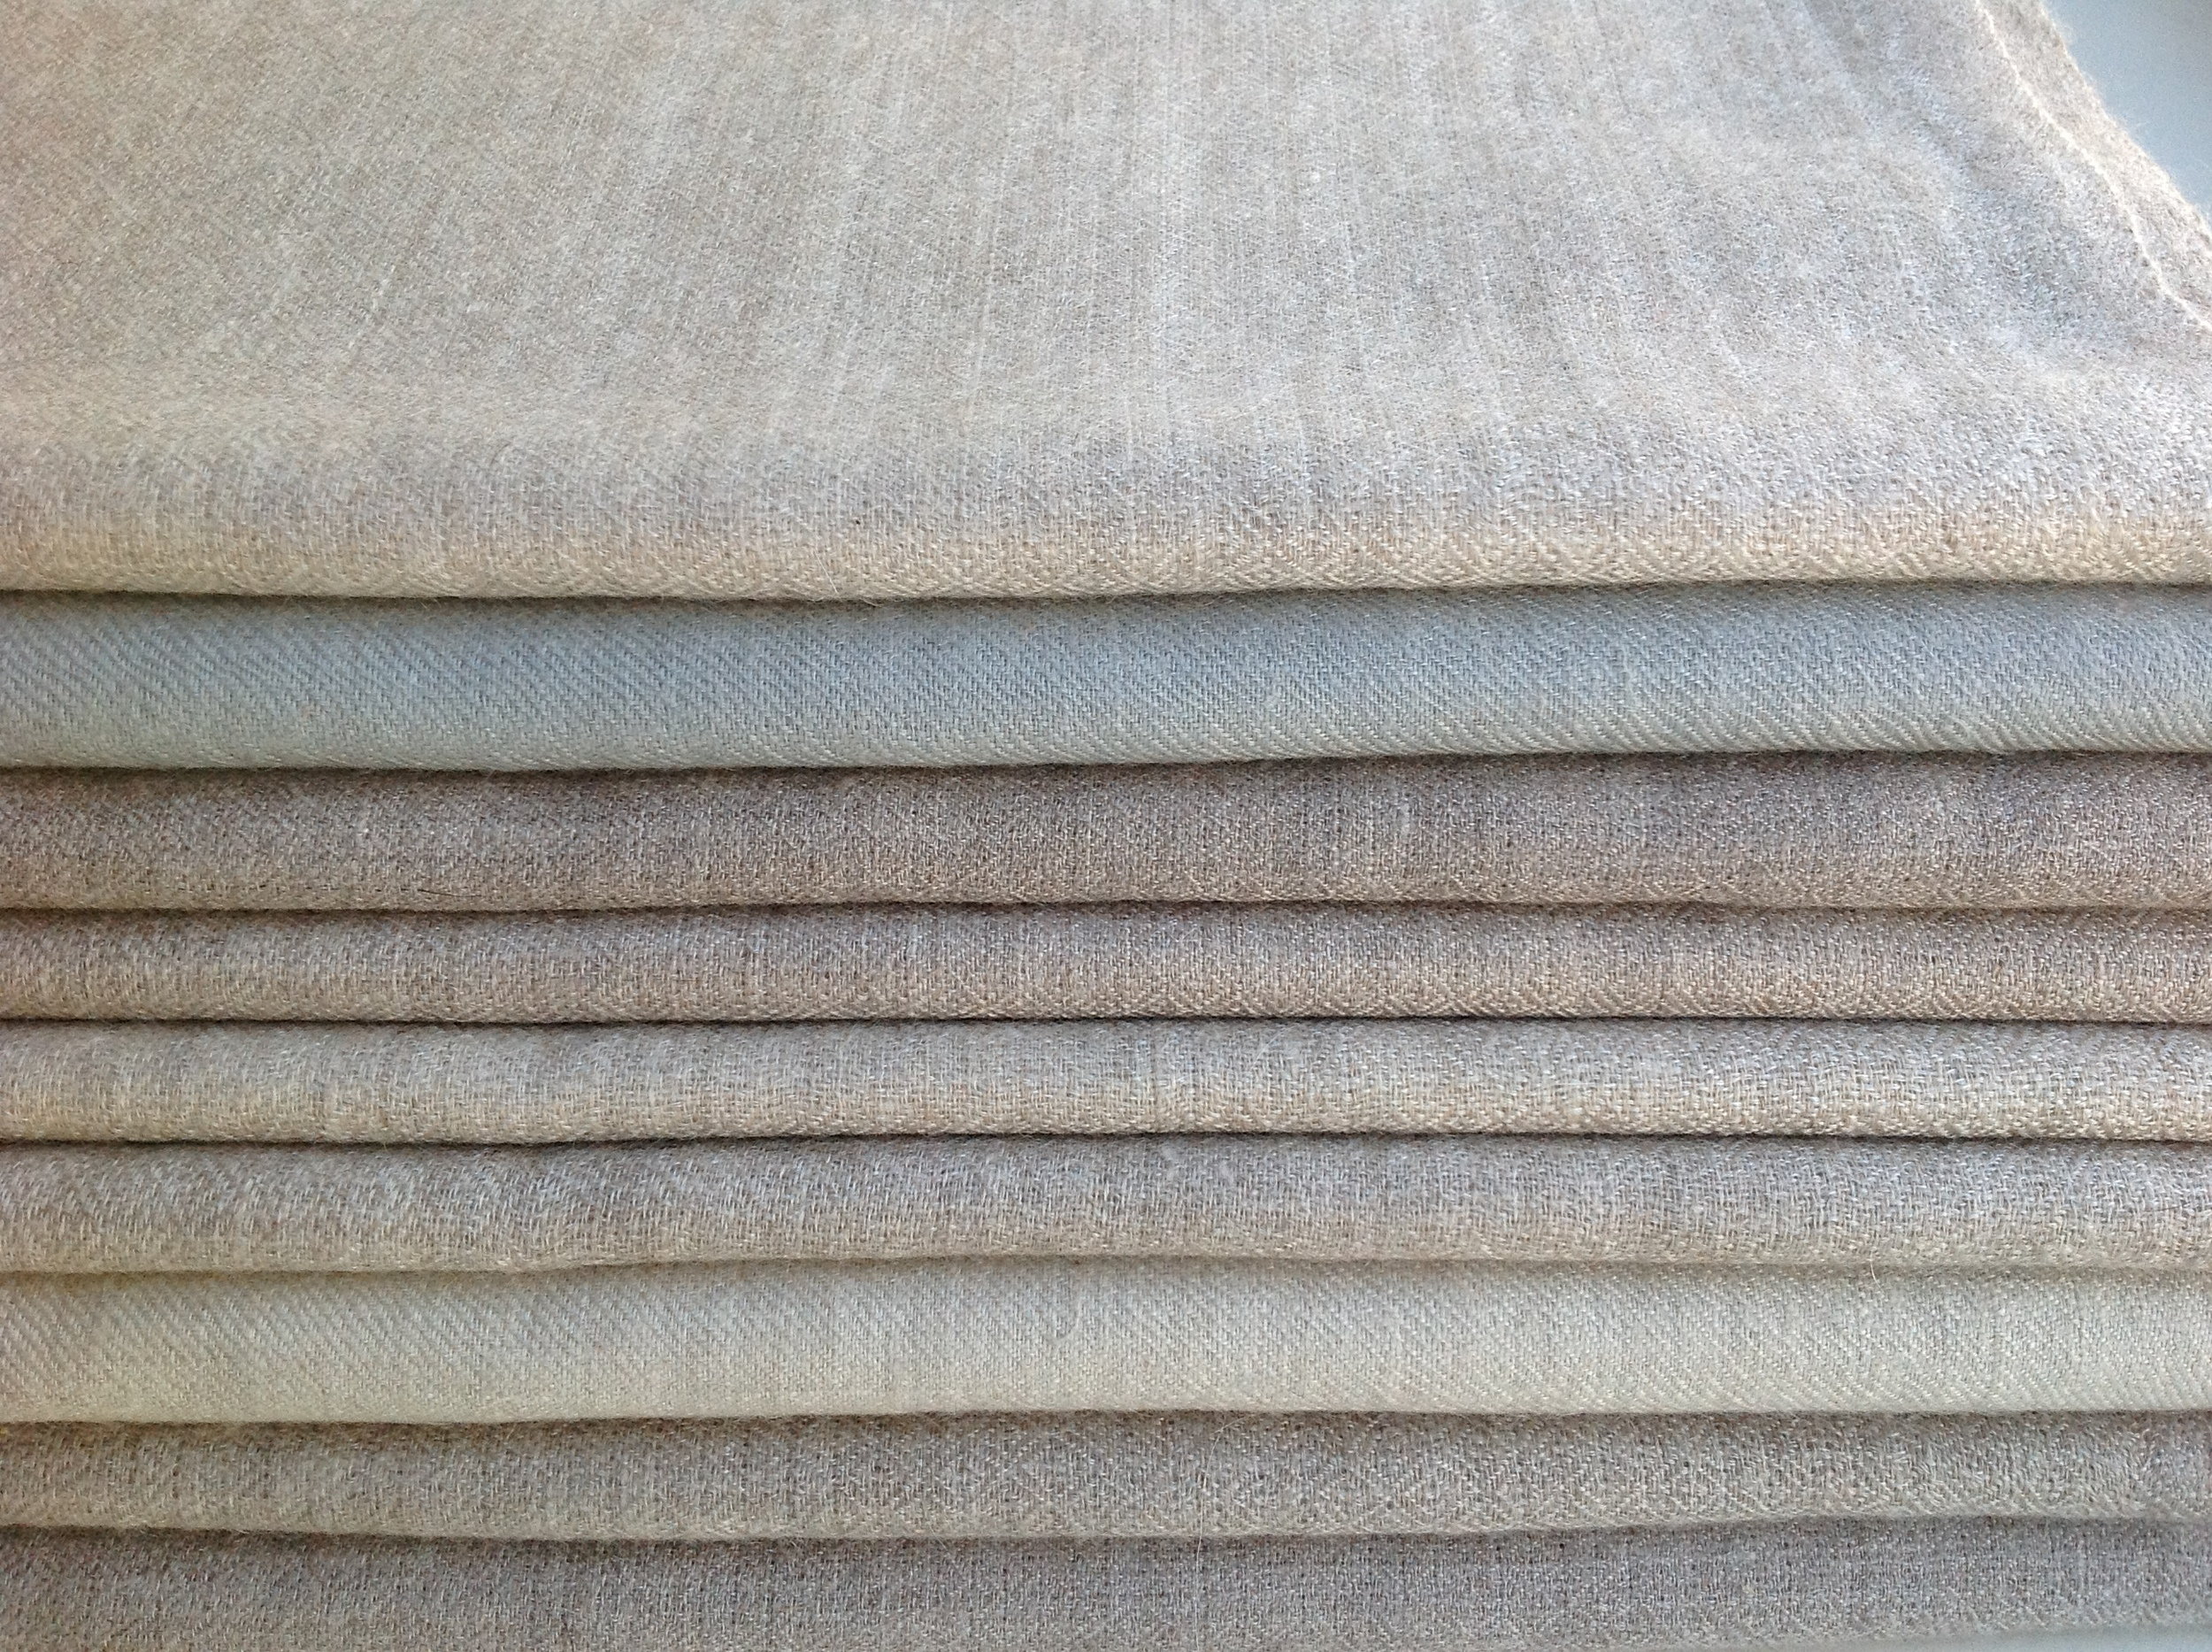 pure cashmere in different weights, including handloomed qualities